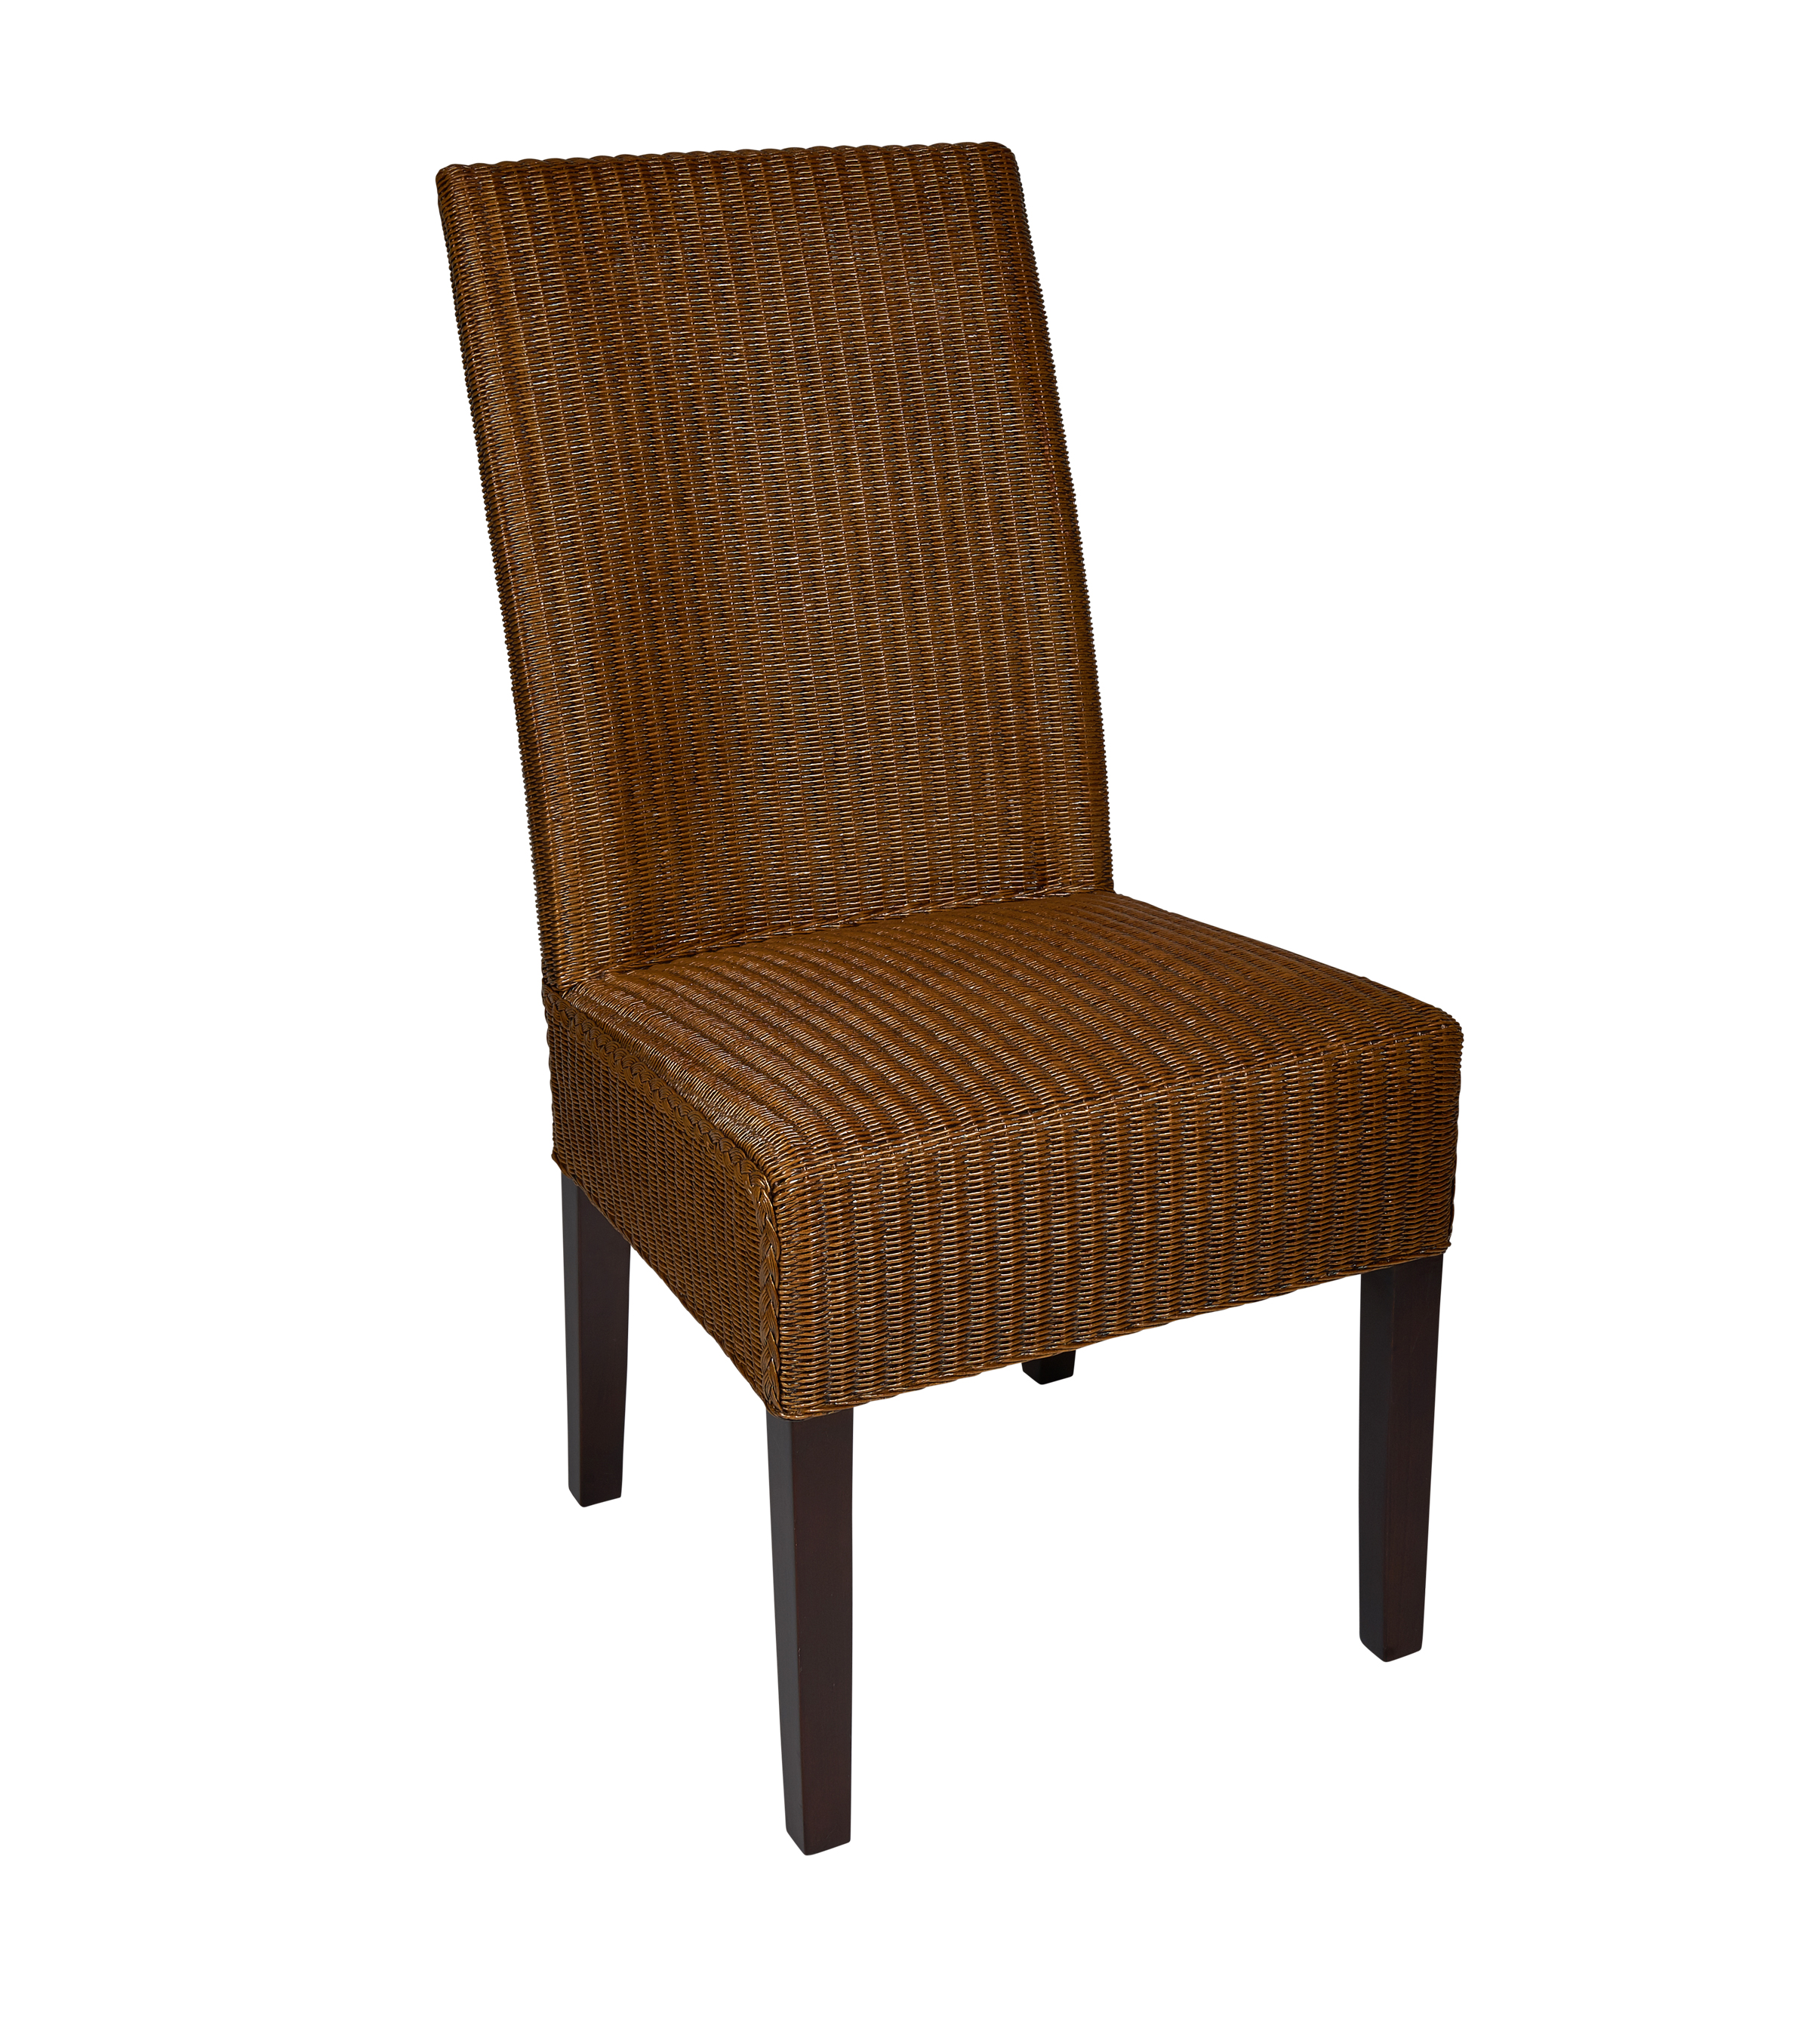 Lloyd Loom Elze Royal brown